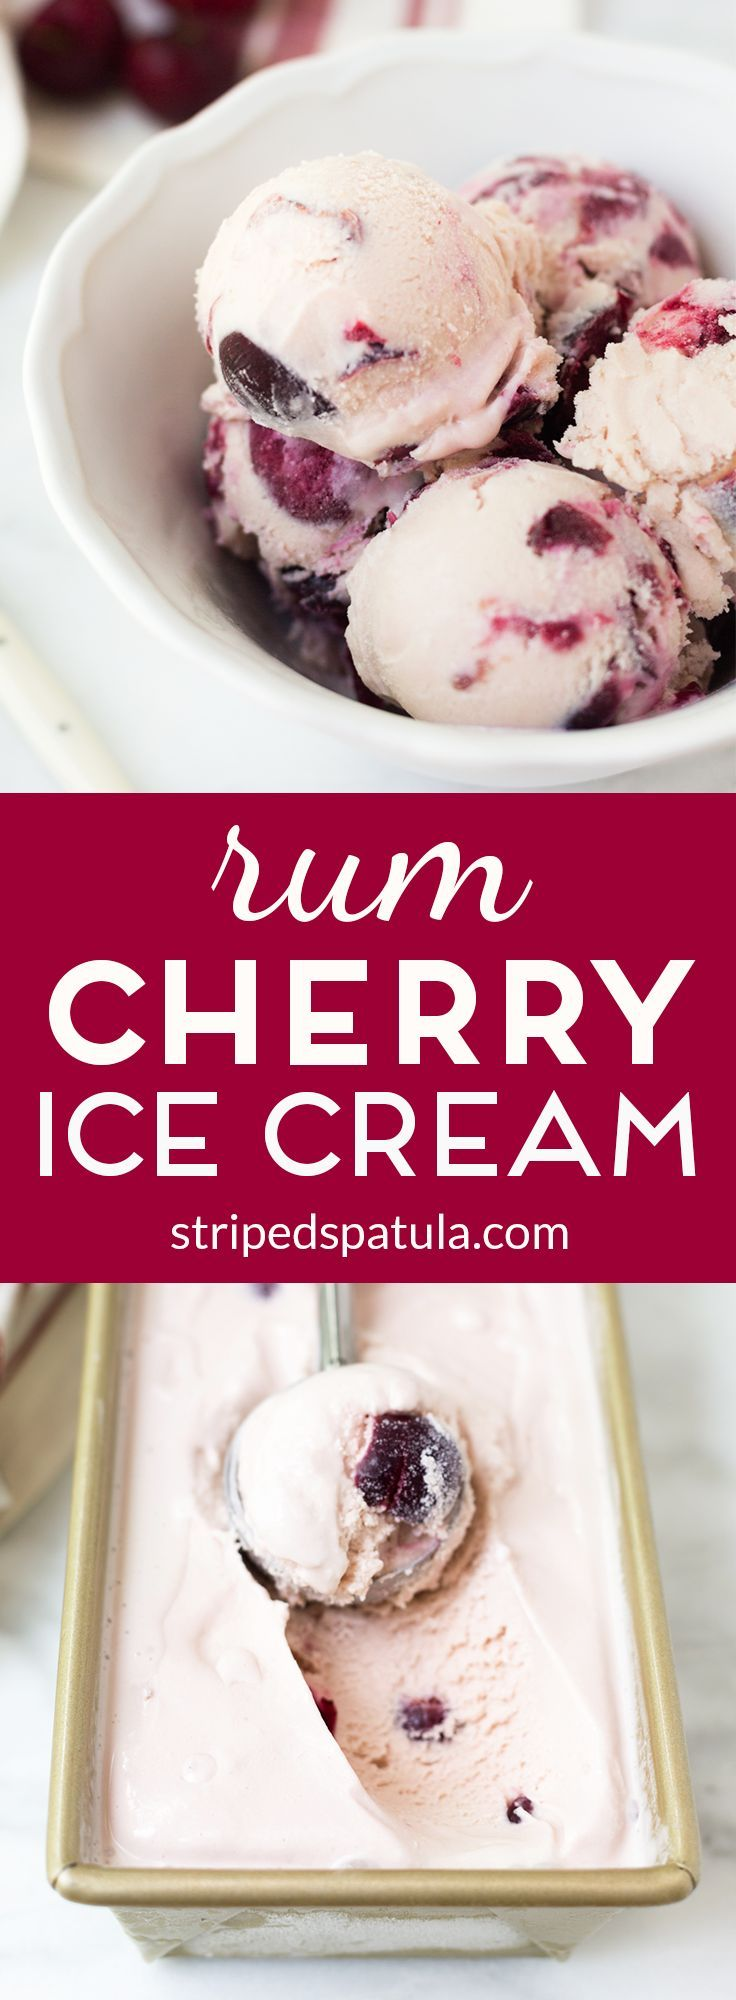 Rich and creamy with chunks of rum-soaked cherries swirled throughout a custard base, this Rum Cherry Ice Cream is a grown-up twist on a classic.